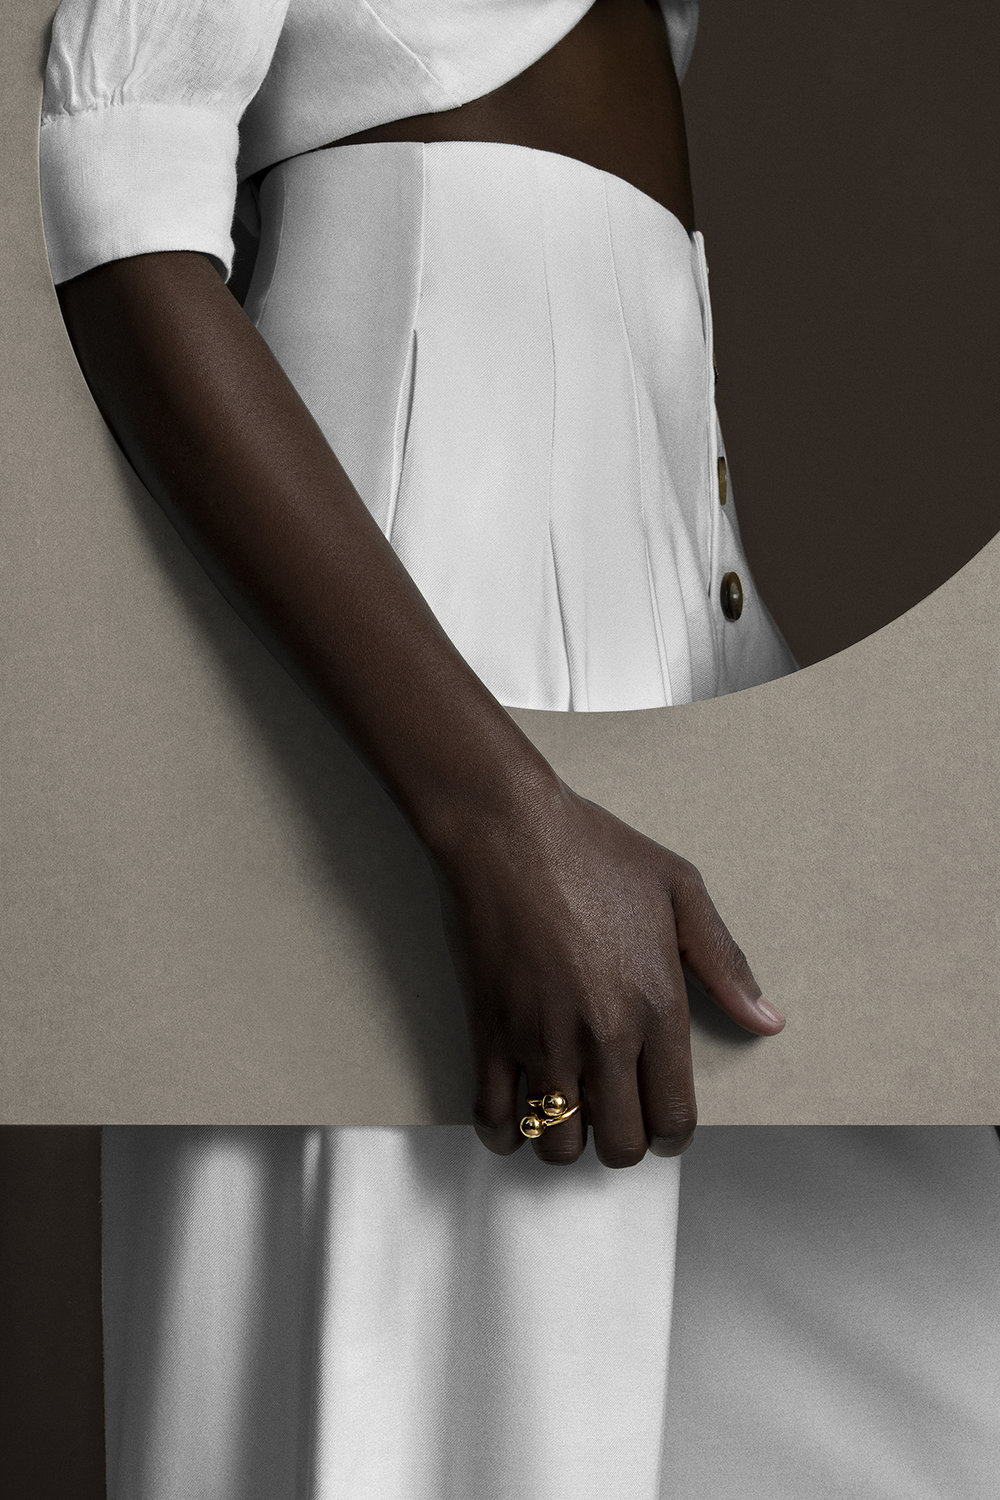 Giannina oteto for nashira arno fashion jewerly nyc  latin american designer from dominican republic  modern sculptural statement gold sphere ring shop online sale.jpg